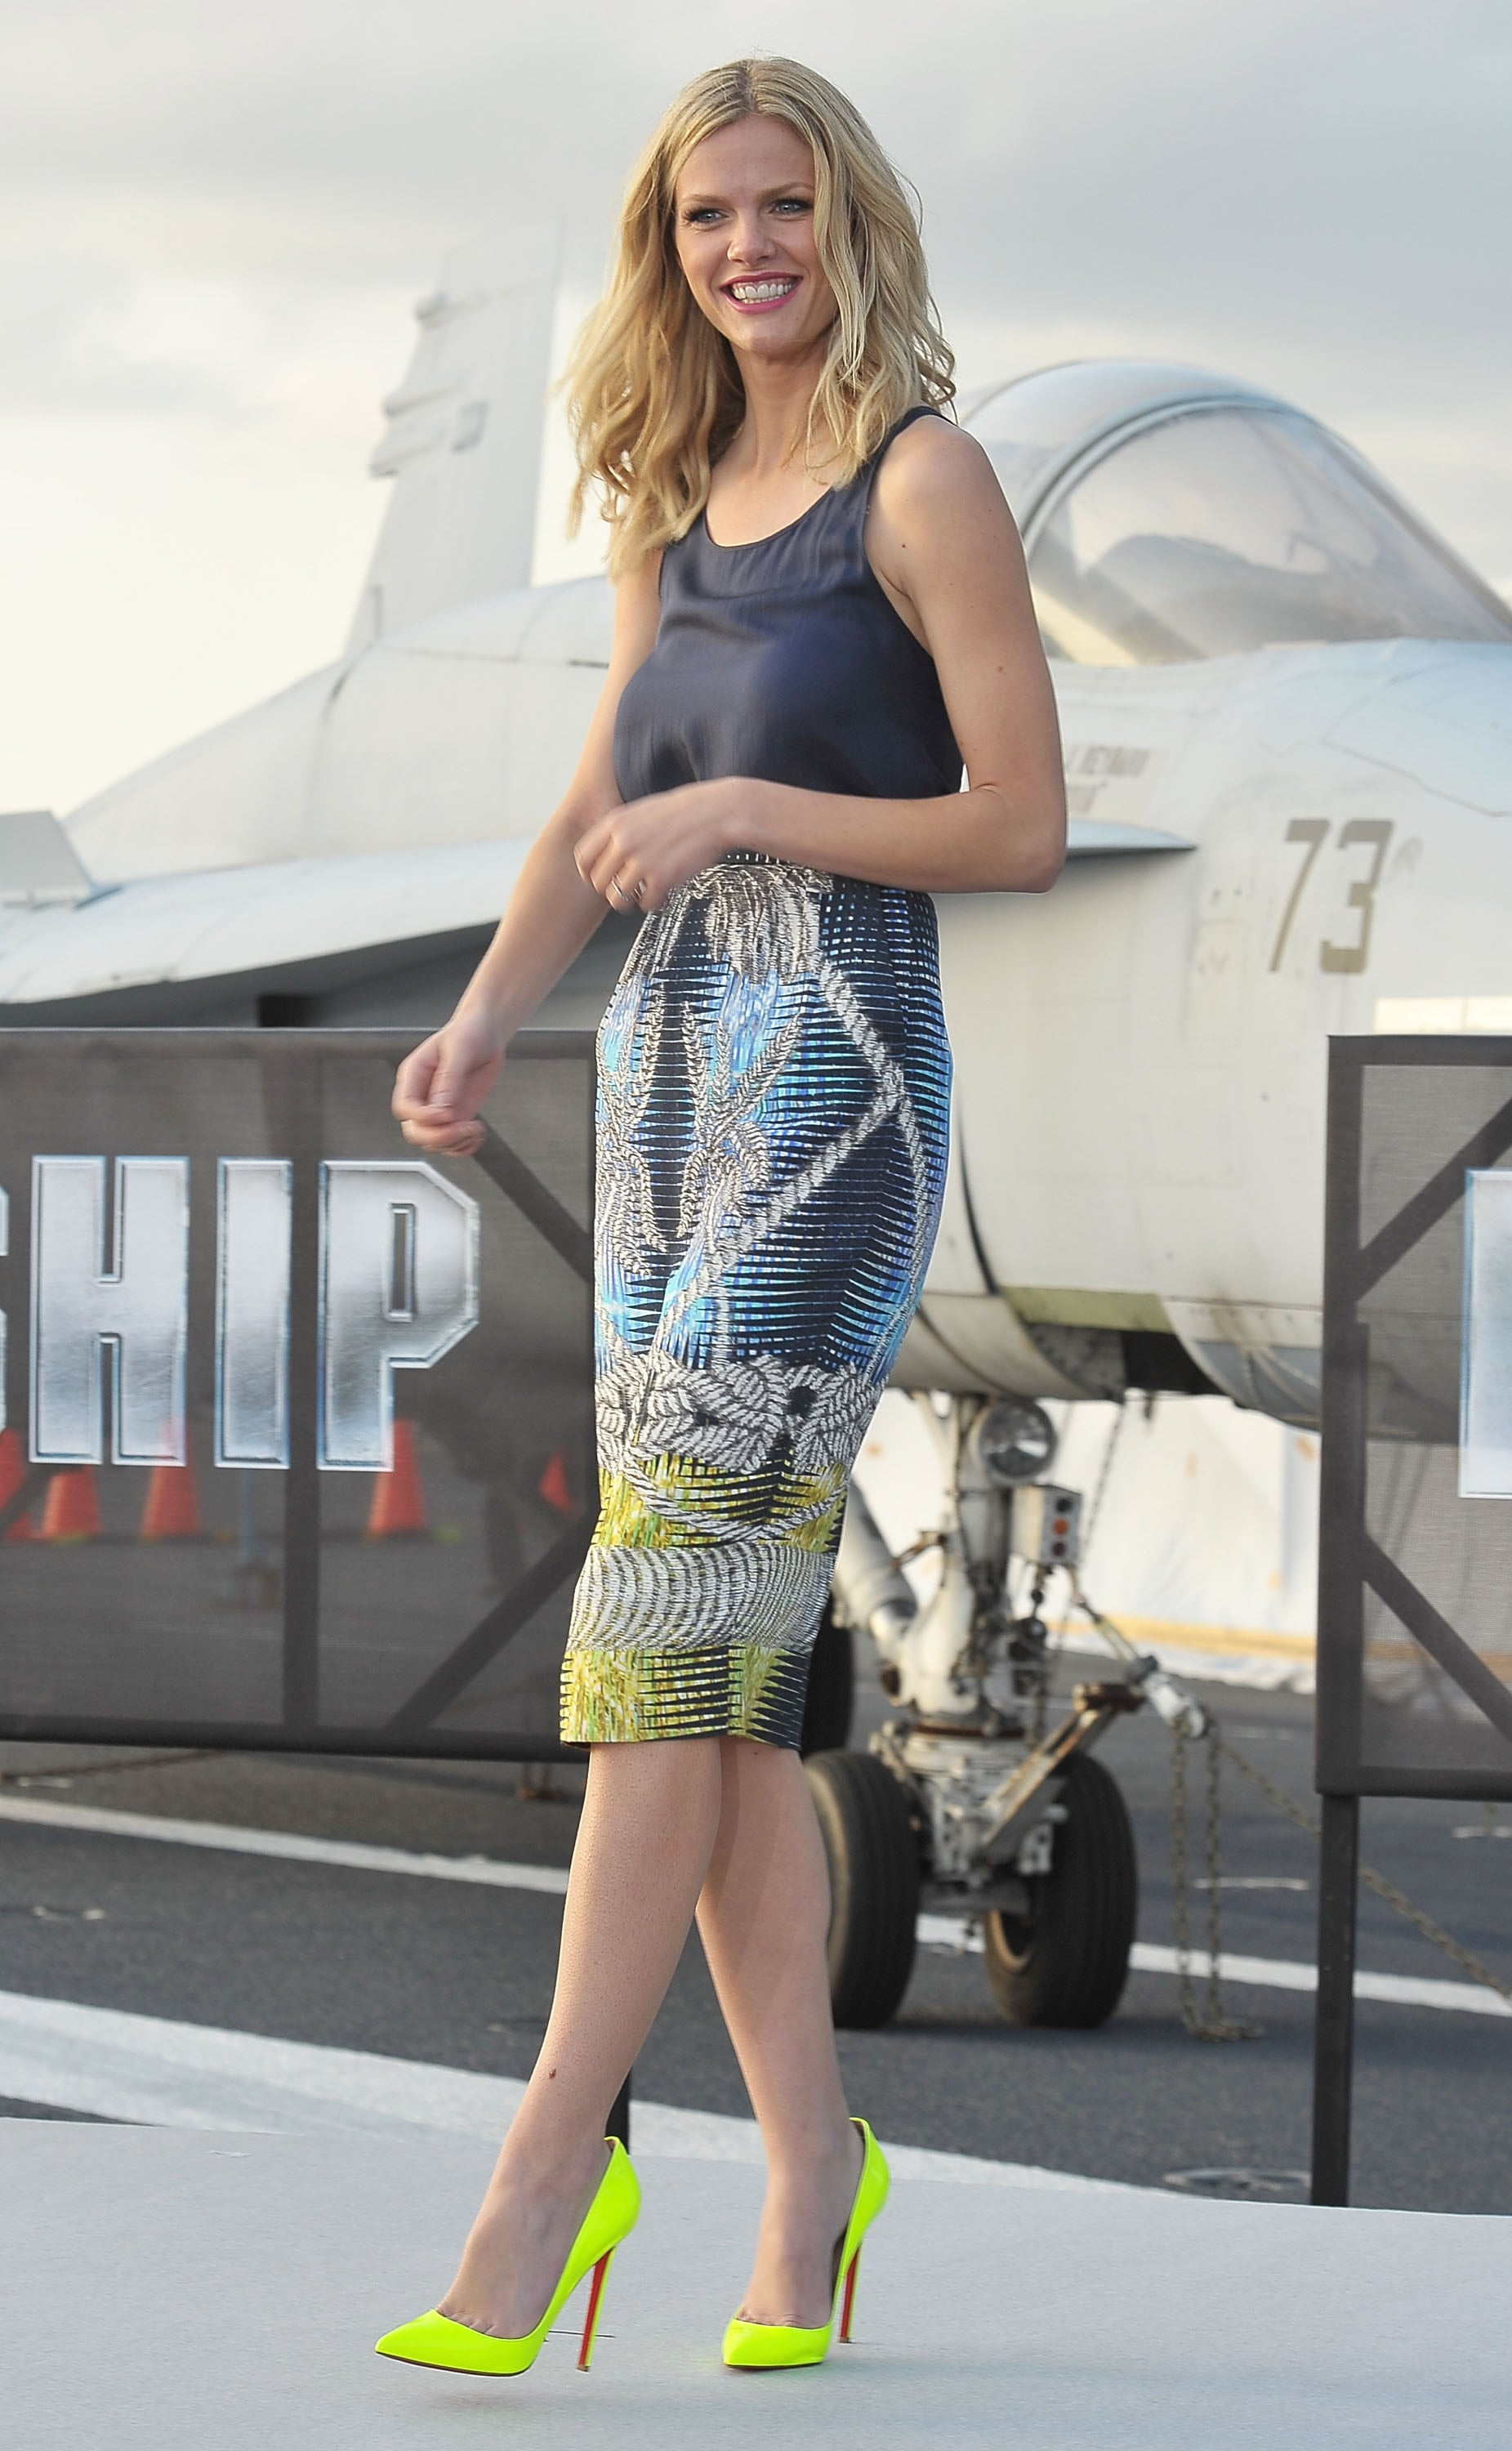 Brooklyn lit up the Japan photocall in a tropical Peter Pilotto print and a pair of neoprene Louboutins.